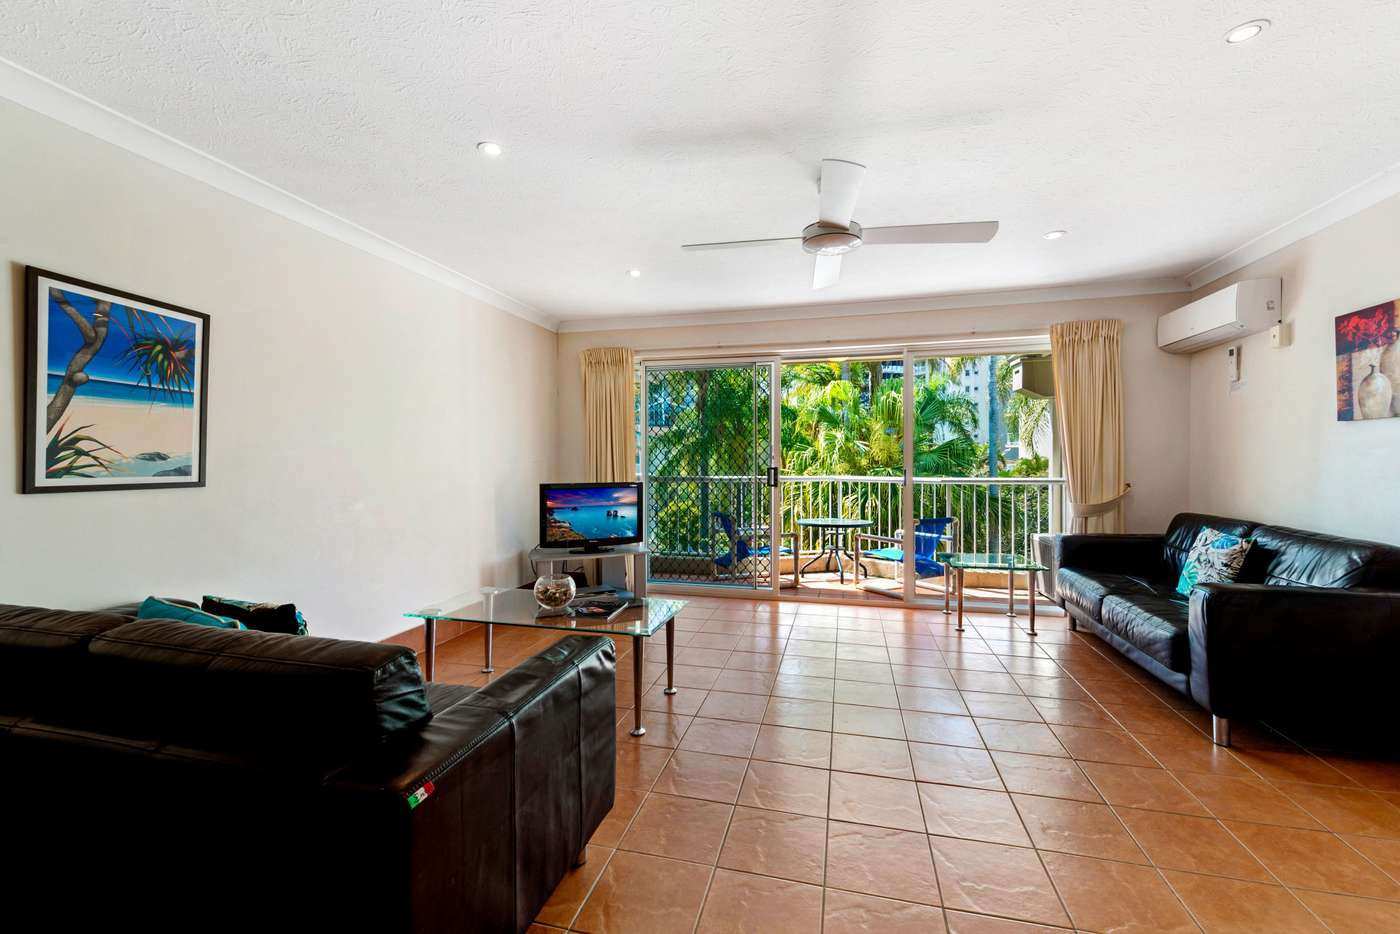 Fifth view of Homely apartment listing, 23 Wharf Road, Surfers Paradise QLD 4217